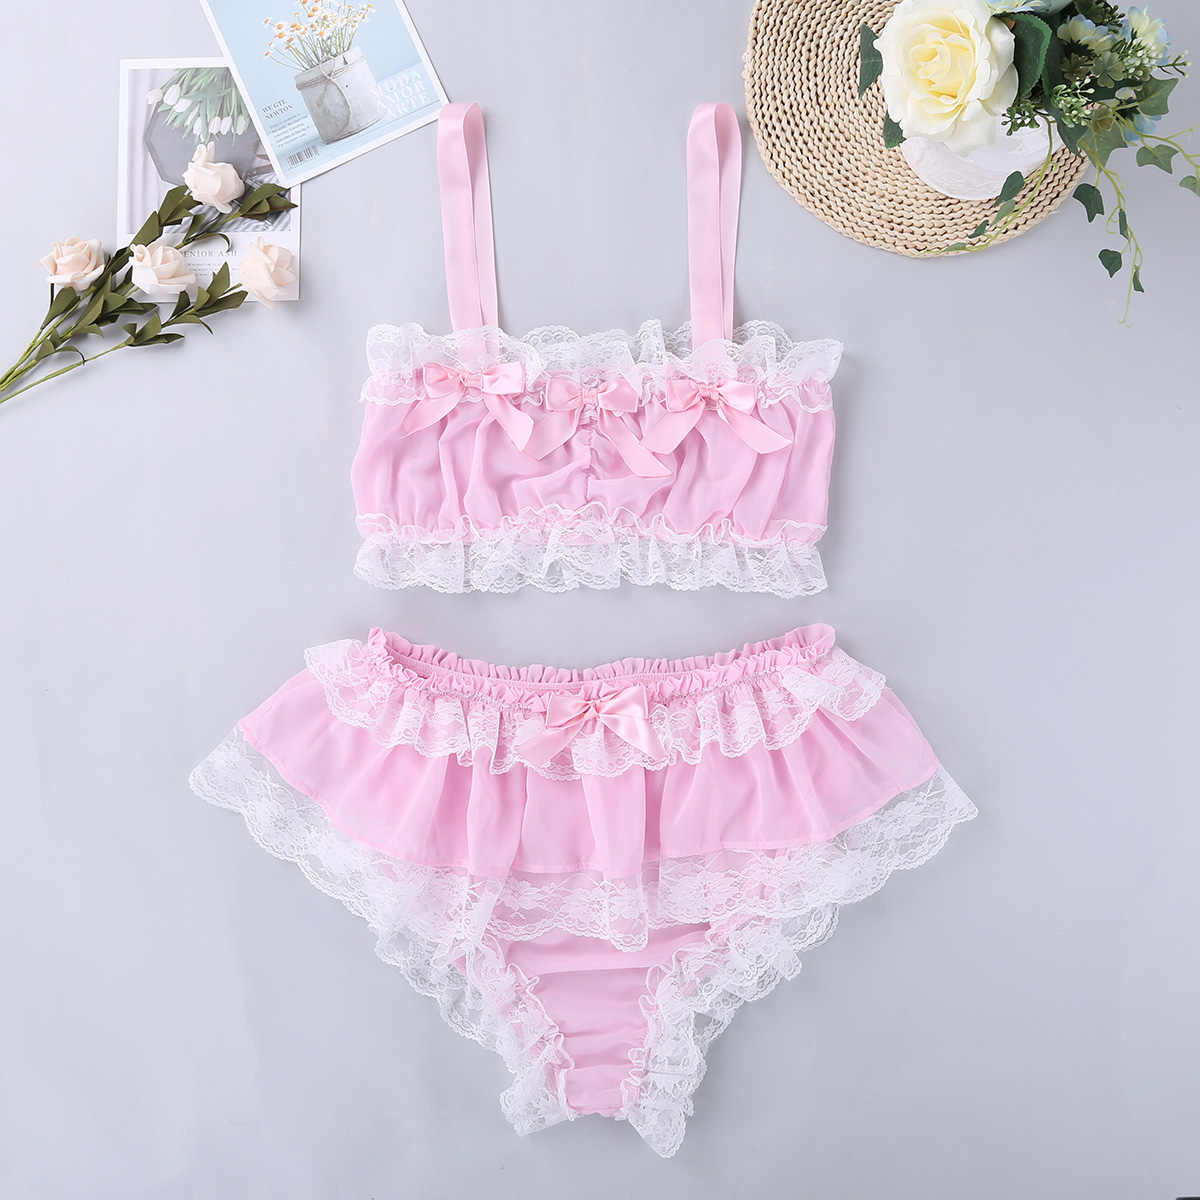 ... TiaoBug Men Ruffle Lace Sheer Chiffon Crossdressing Sissy Lingerie Set  Men Bra Top Skirted Panties Briefs ...